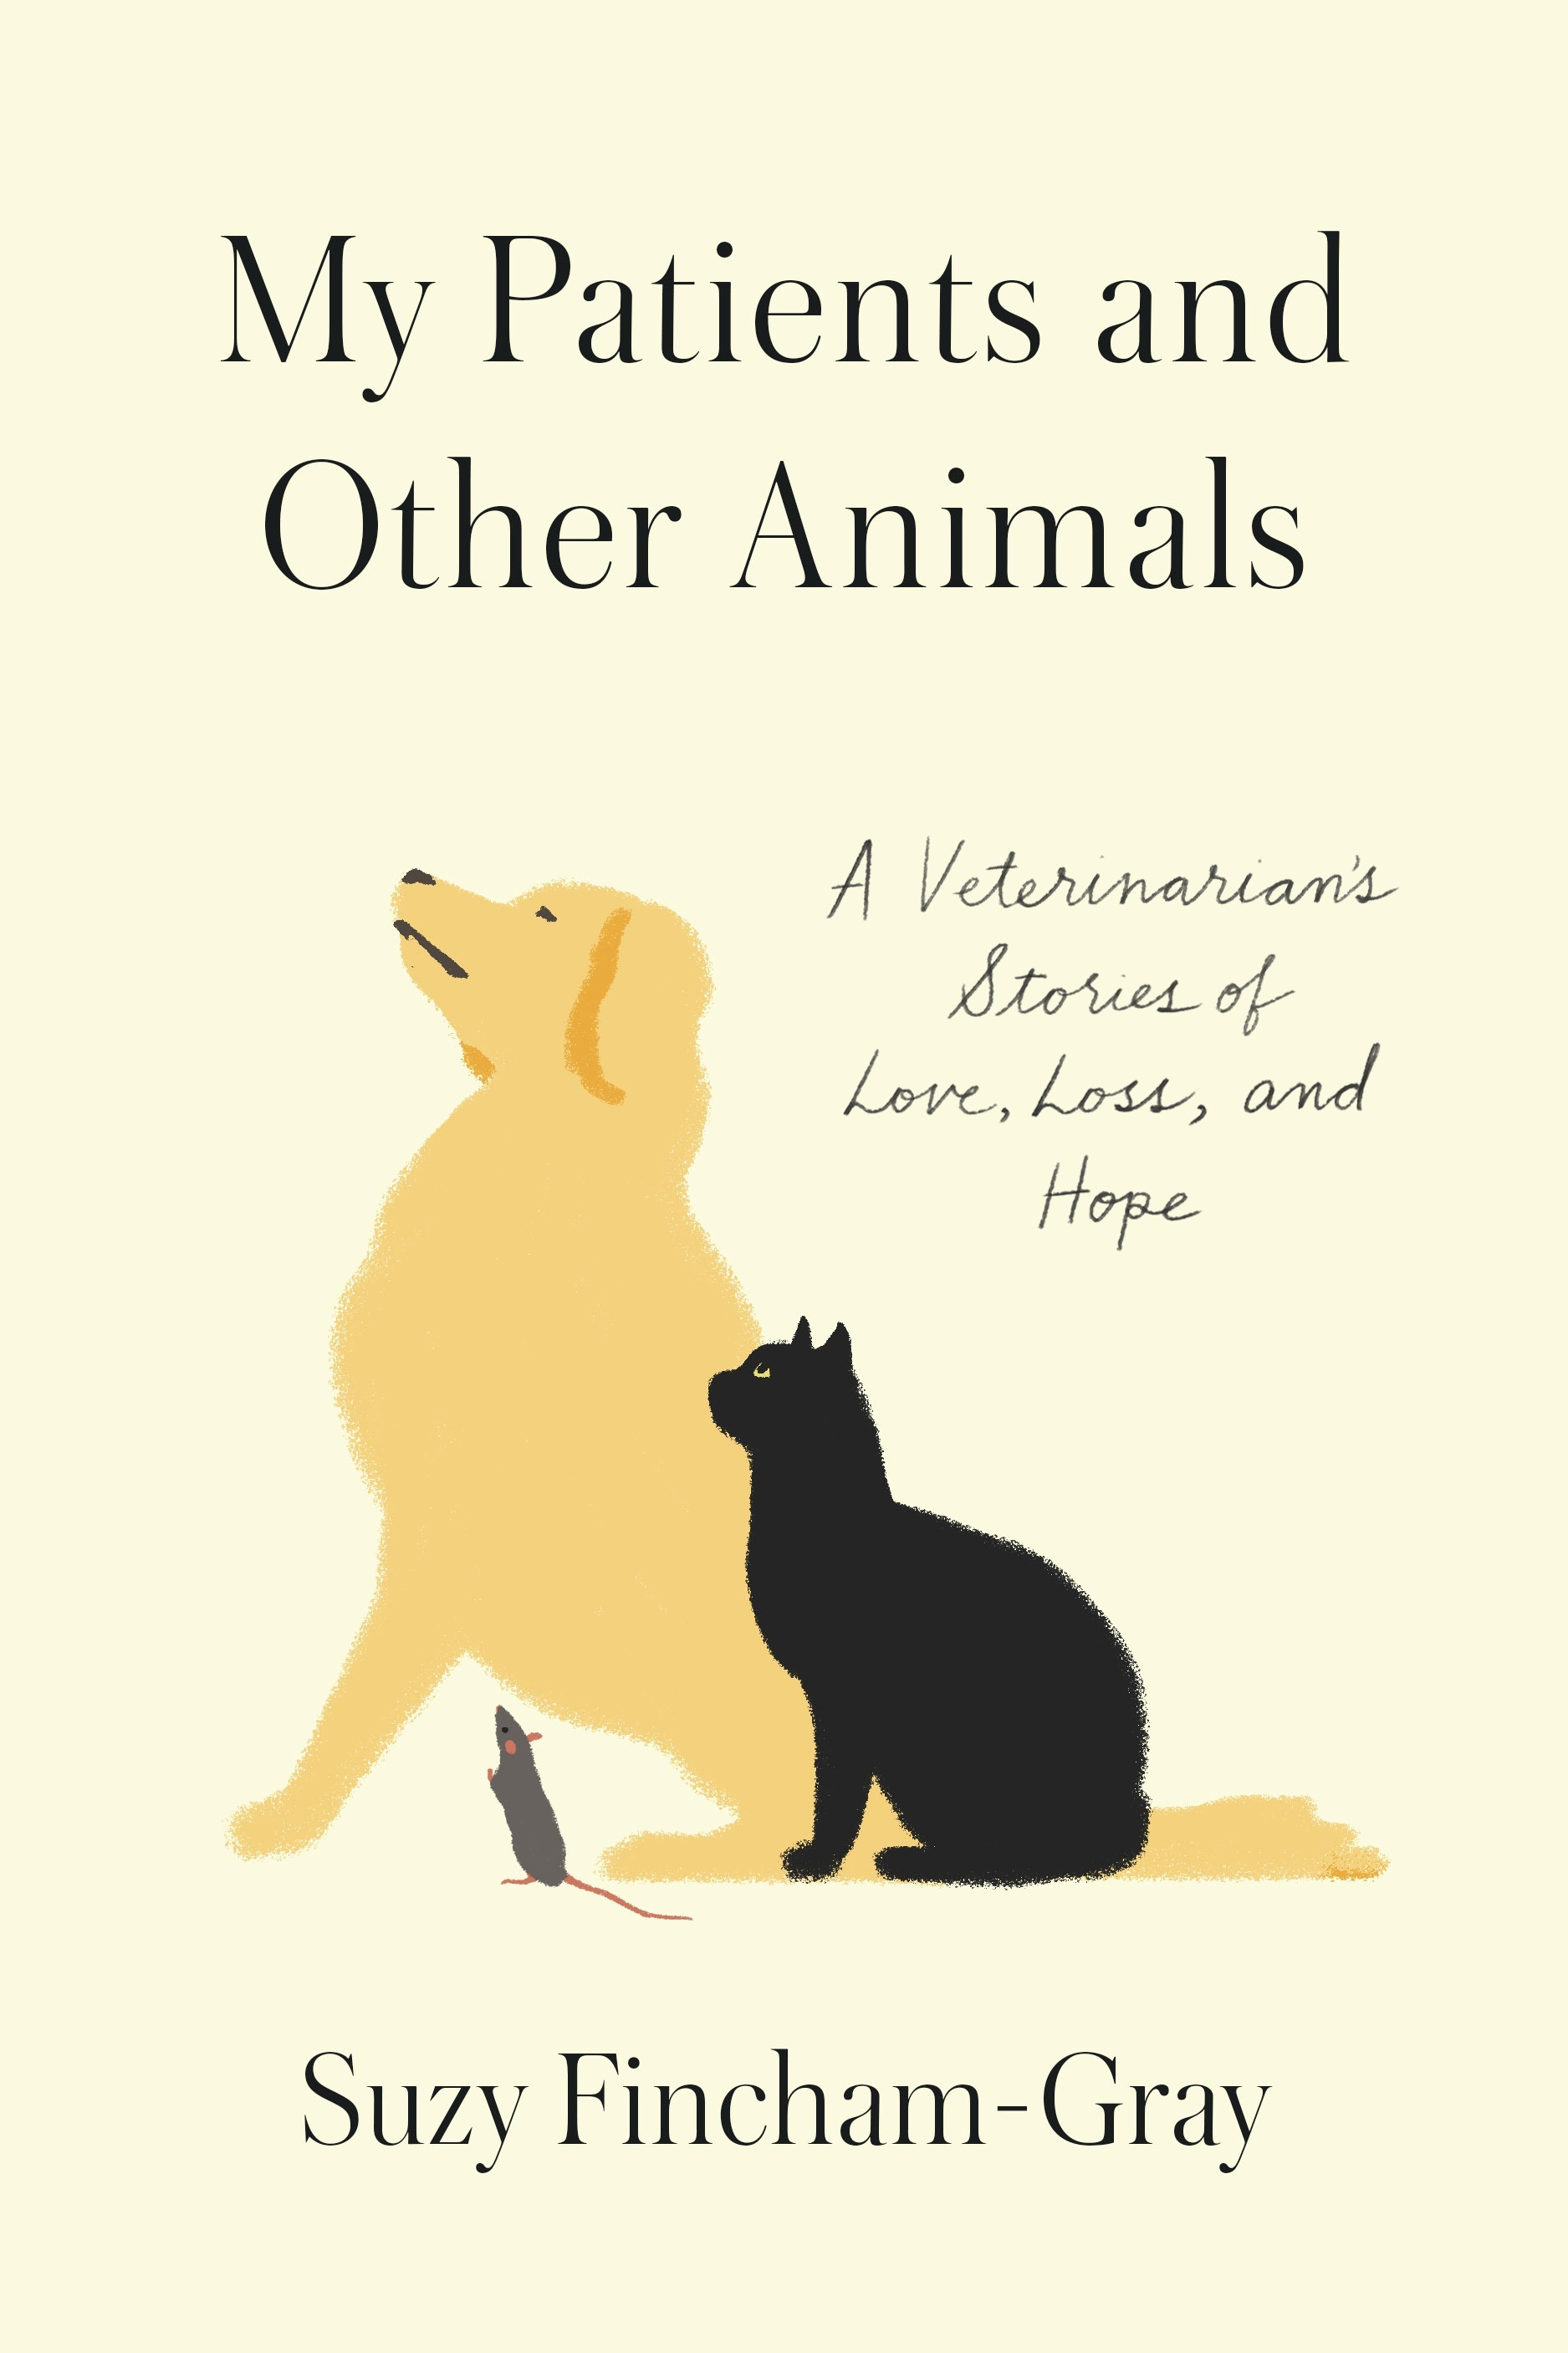 My Patients and Other Animals A Veterinarian's Stories of Love, Loss, and Hope